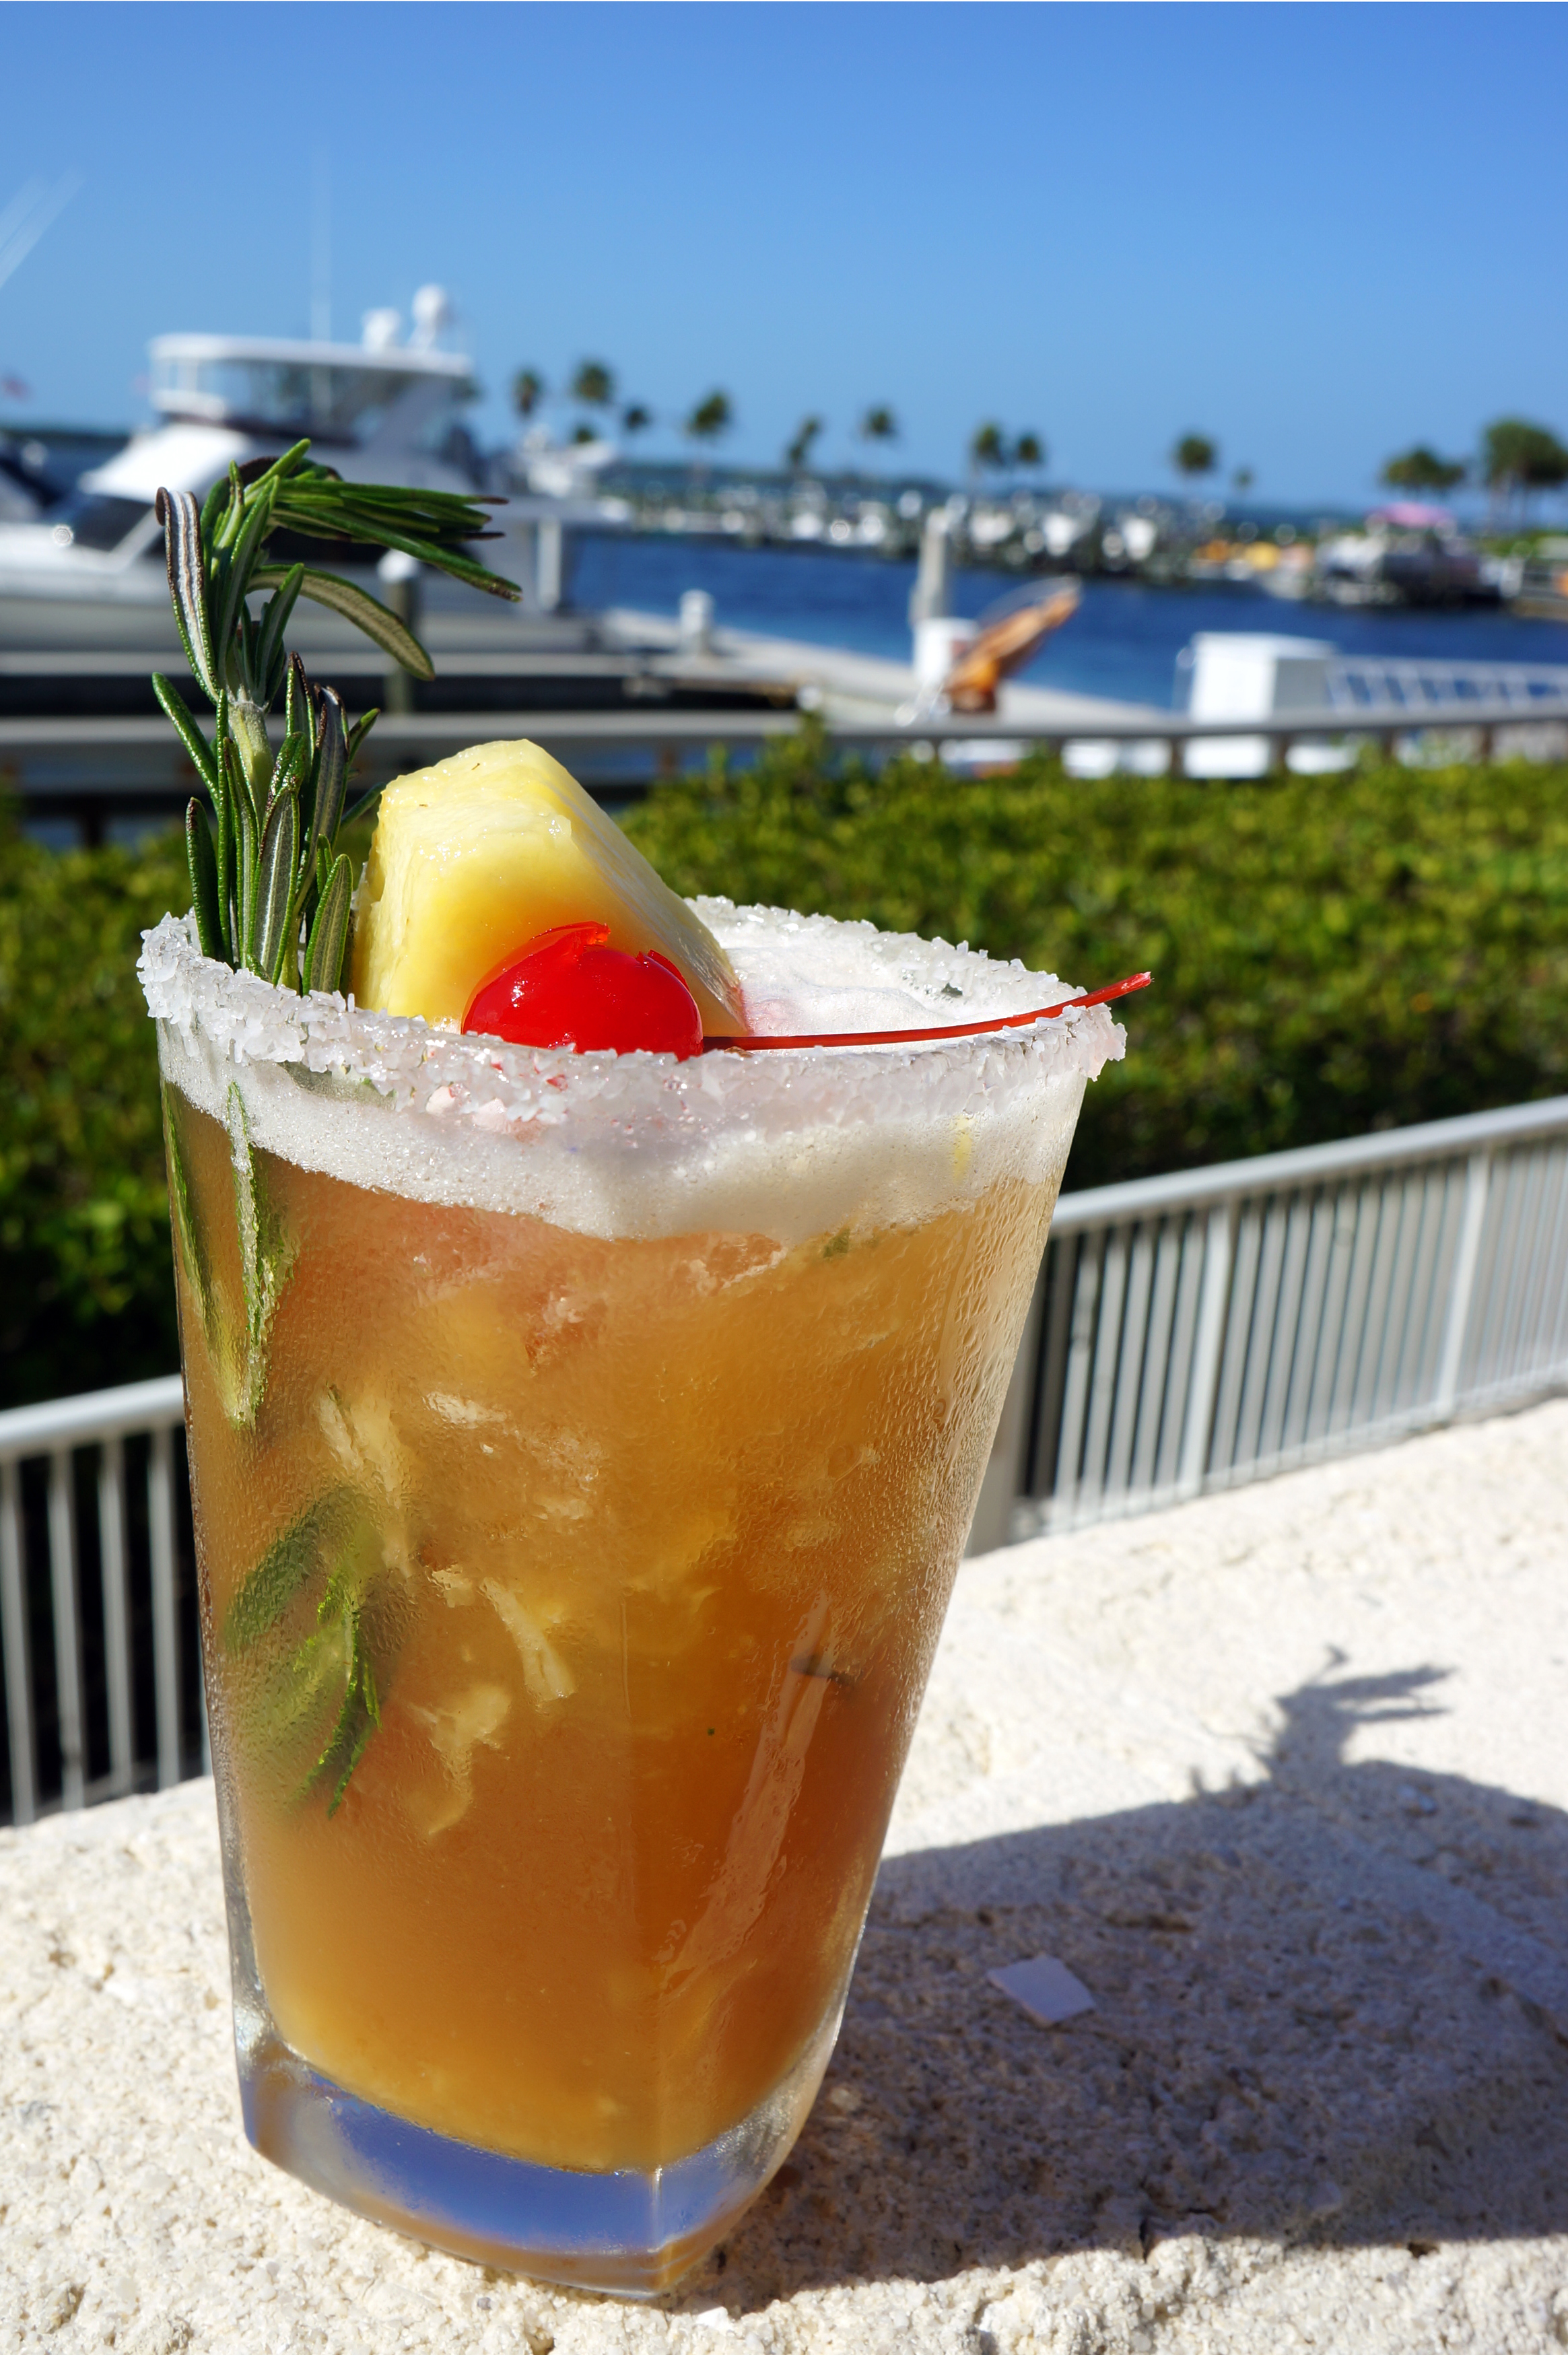 Marker 92 at the Westin Cape Coral Resort at Marina Village puts an herbaceous and tropical twist on its signature margarita, pairing fresh-squeezed pineapple and savory rosemary with Milagro Reposado Tequila, cherry Heering, agave simple syrup, and lime and orange bitters.